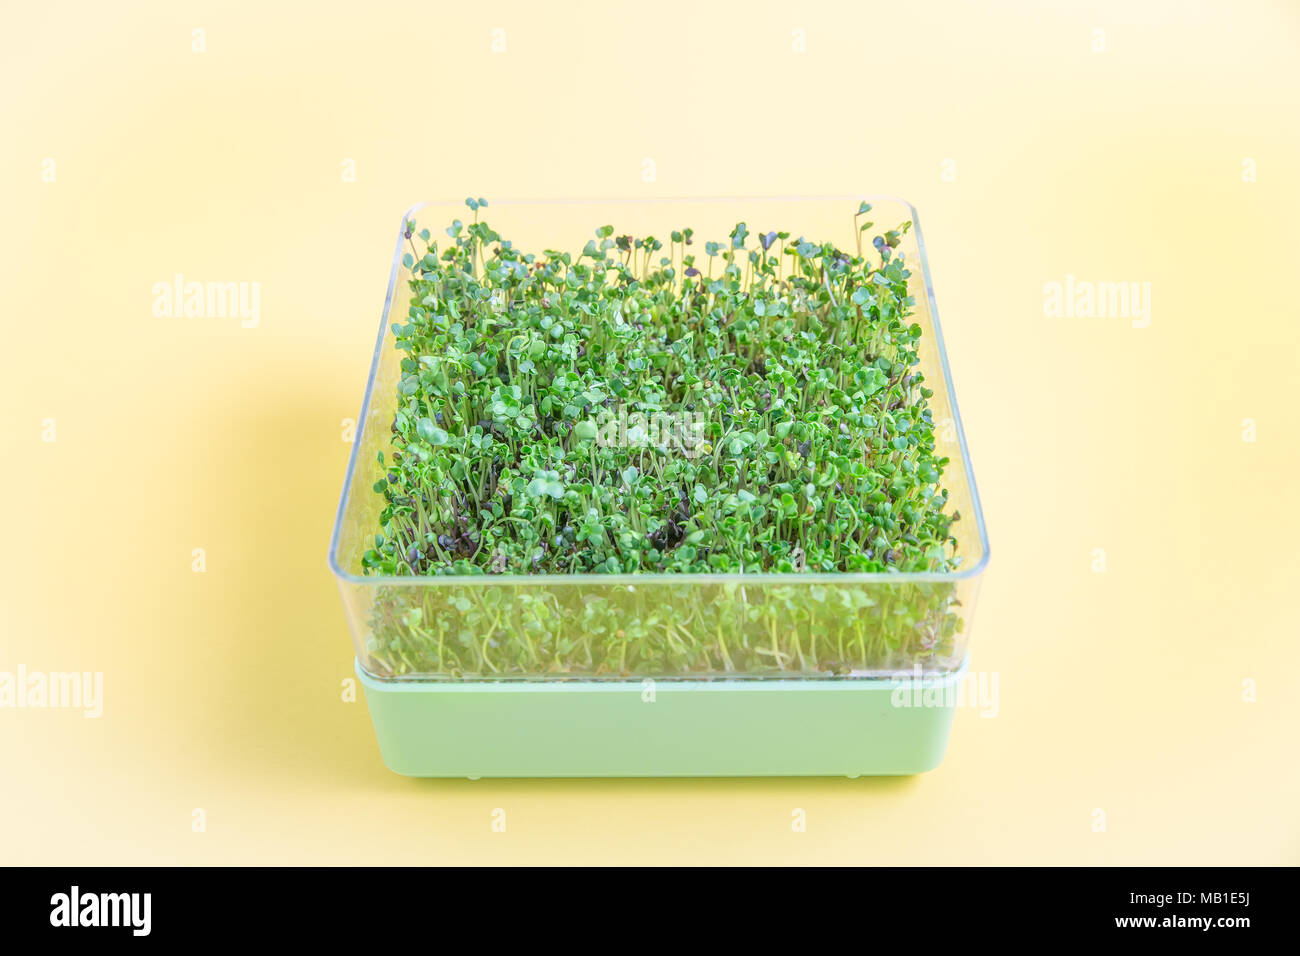 Bright green fresh microgreens salad mix sprouted in a square dish on yellow background - Stock Image